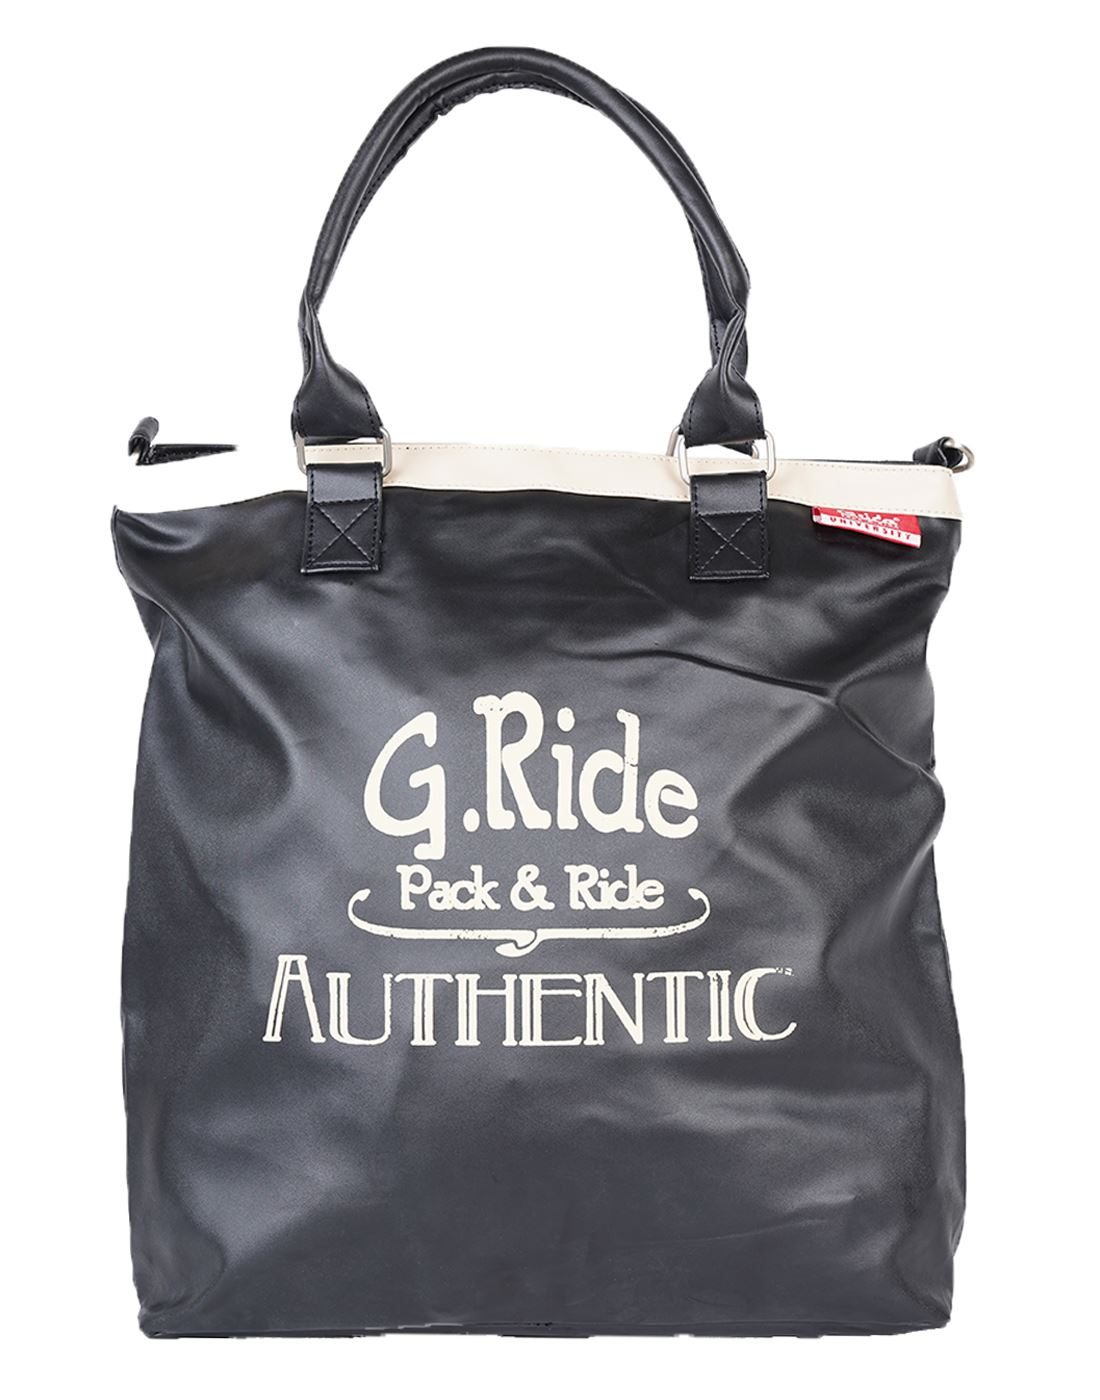 Tiana Shopping Bag (Black) by G.ride